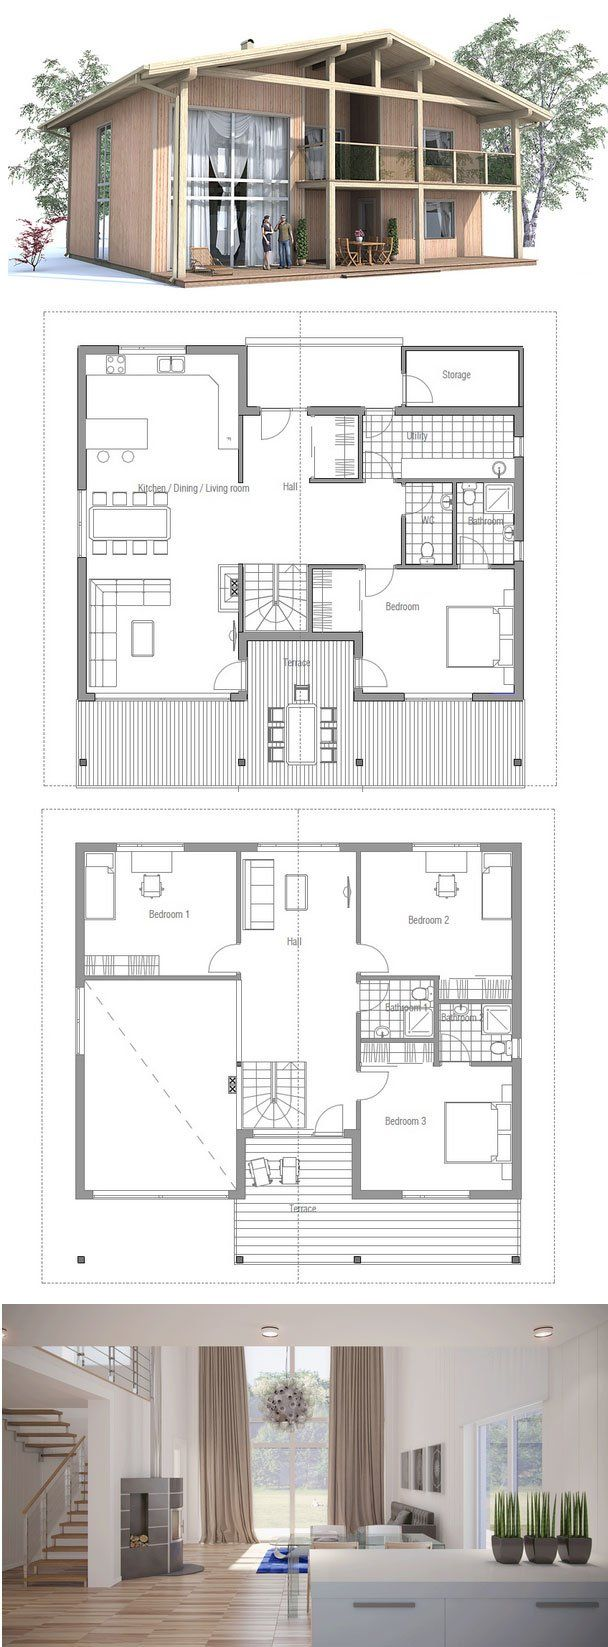 Modern House Plans best 25+ modern house floor plans ideas on pinterest | modern